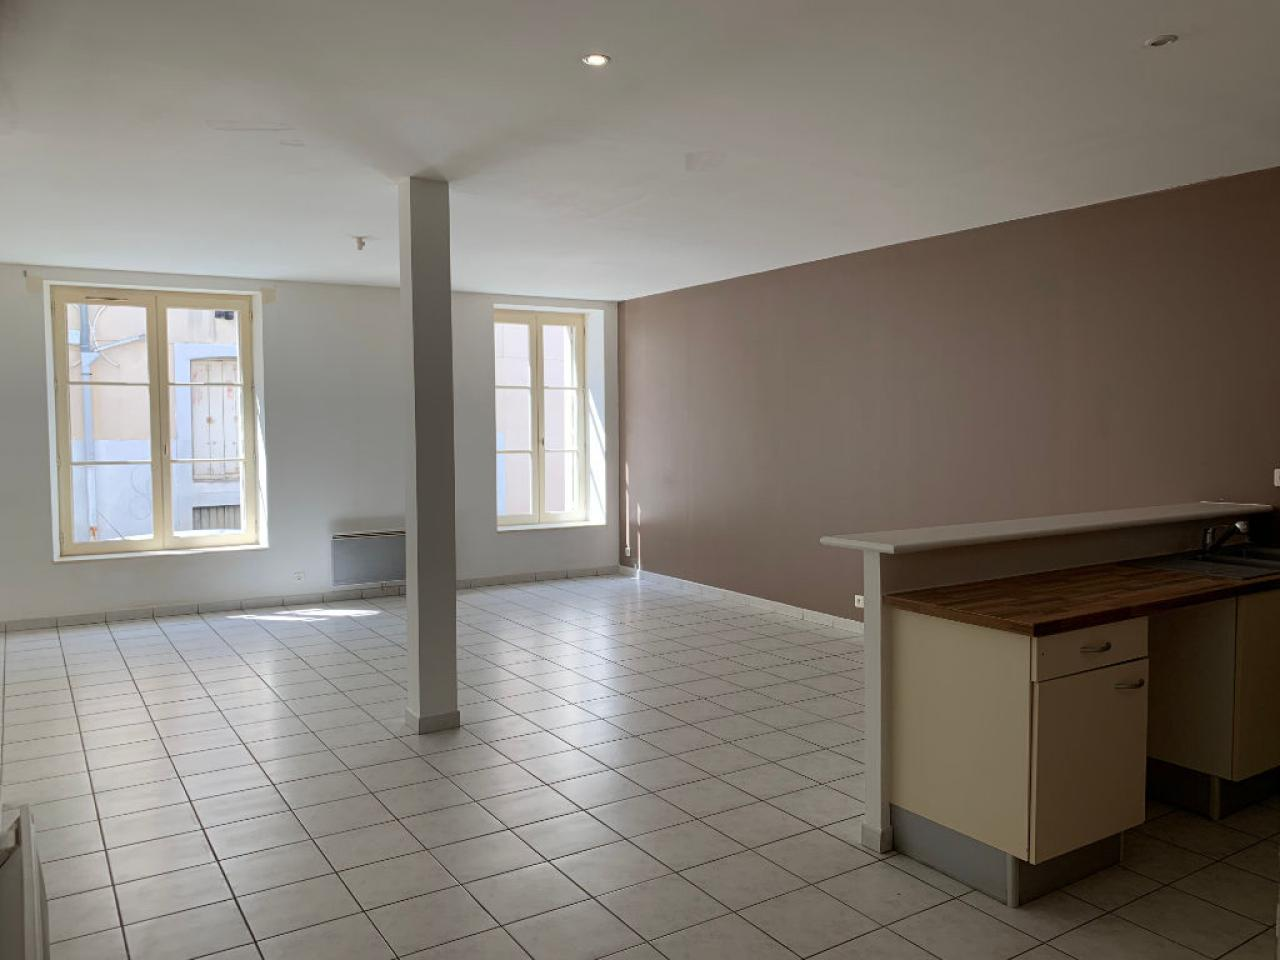 Apartment CARCASSONNE | 525 € / month